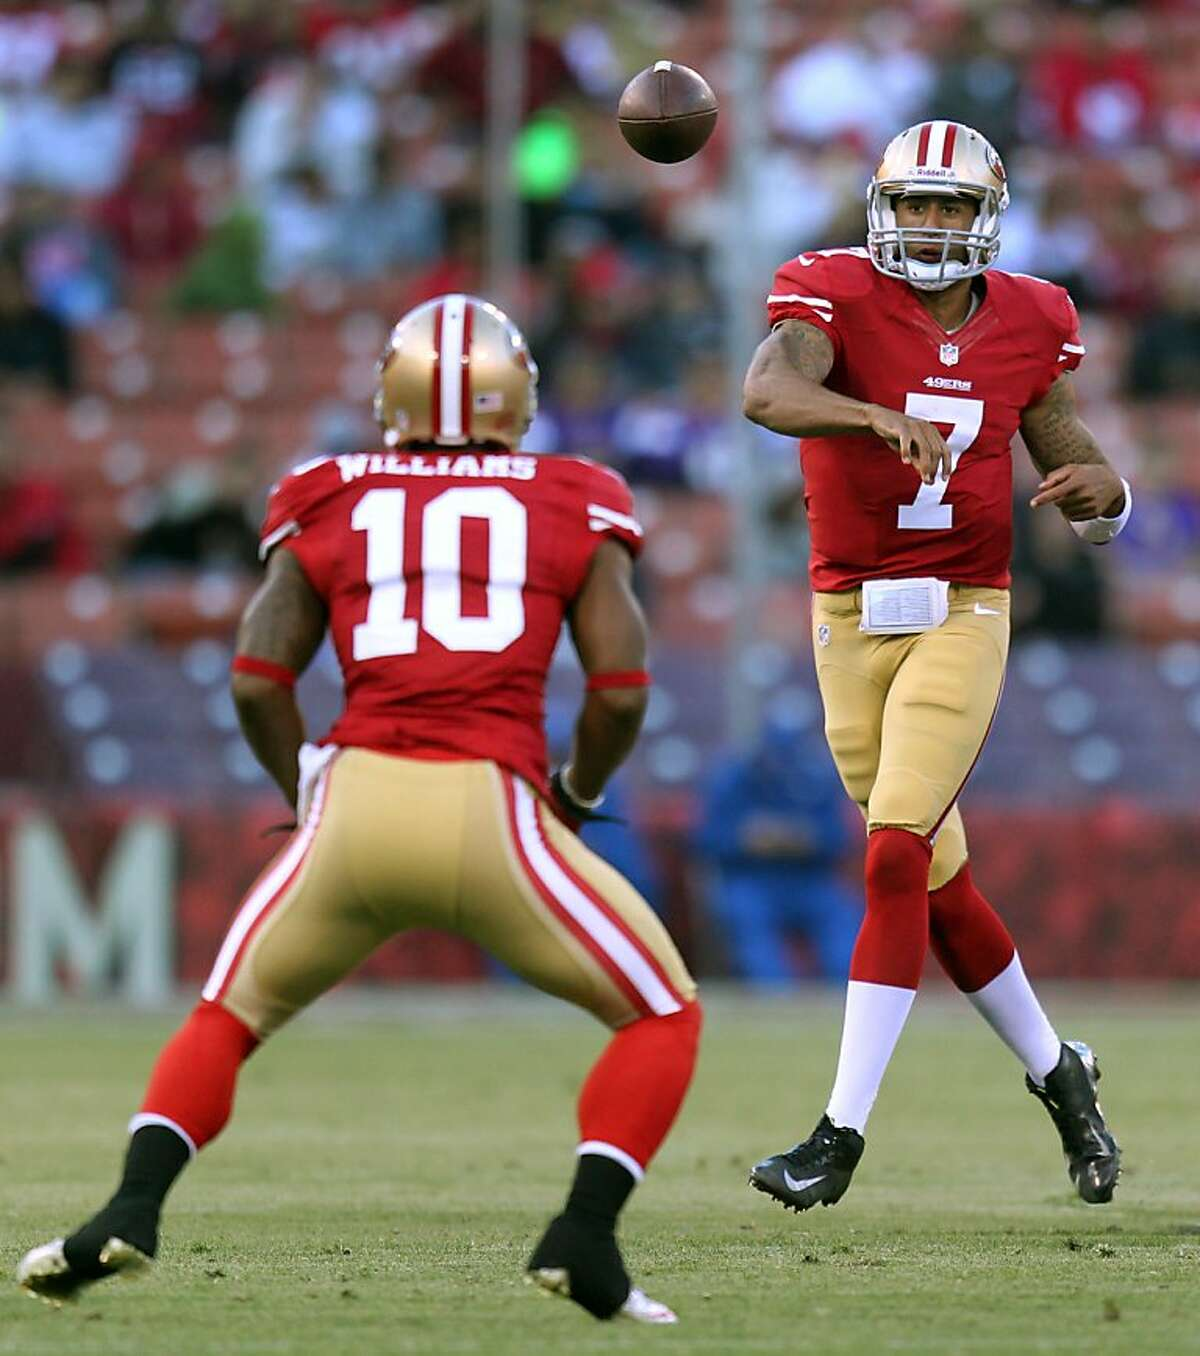 San Francisco 49ers Colin Kaepernick (7) completes a pass to Kyle Williams (10) in the second quarter against the Minnesota Vikings in a preseason exhibition game Friday August 10, 2012 in San Francisco Calif.